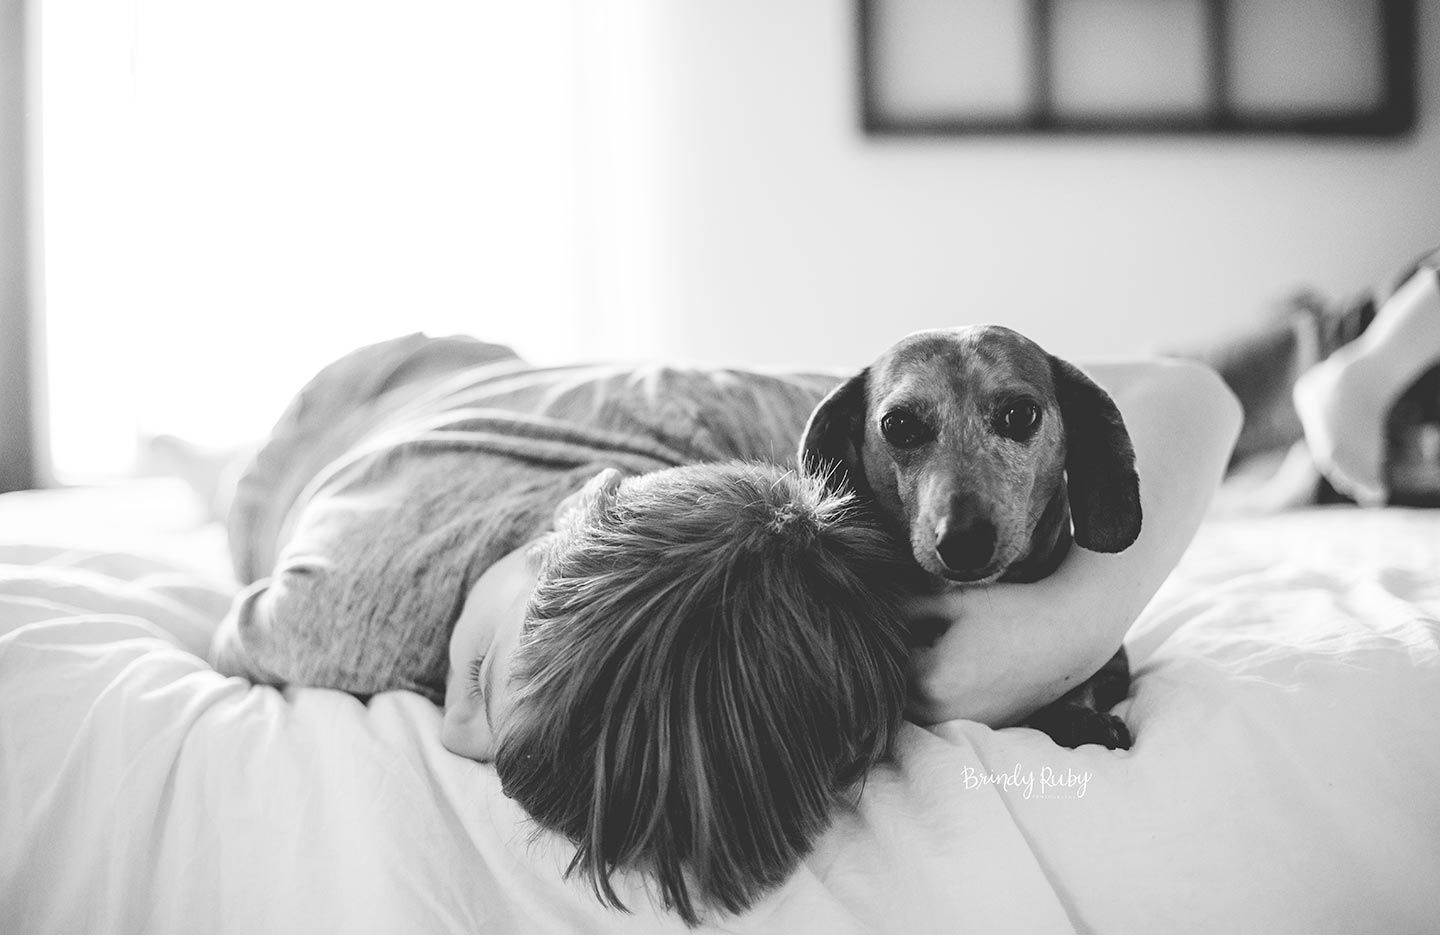 boy and dog snuggling on bed